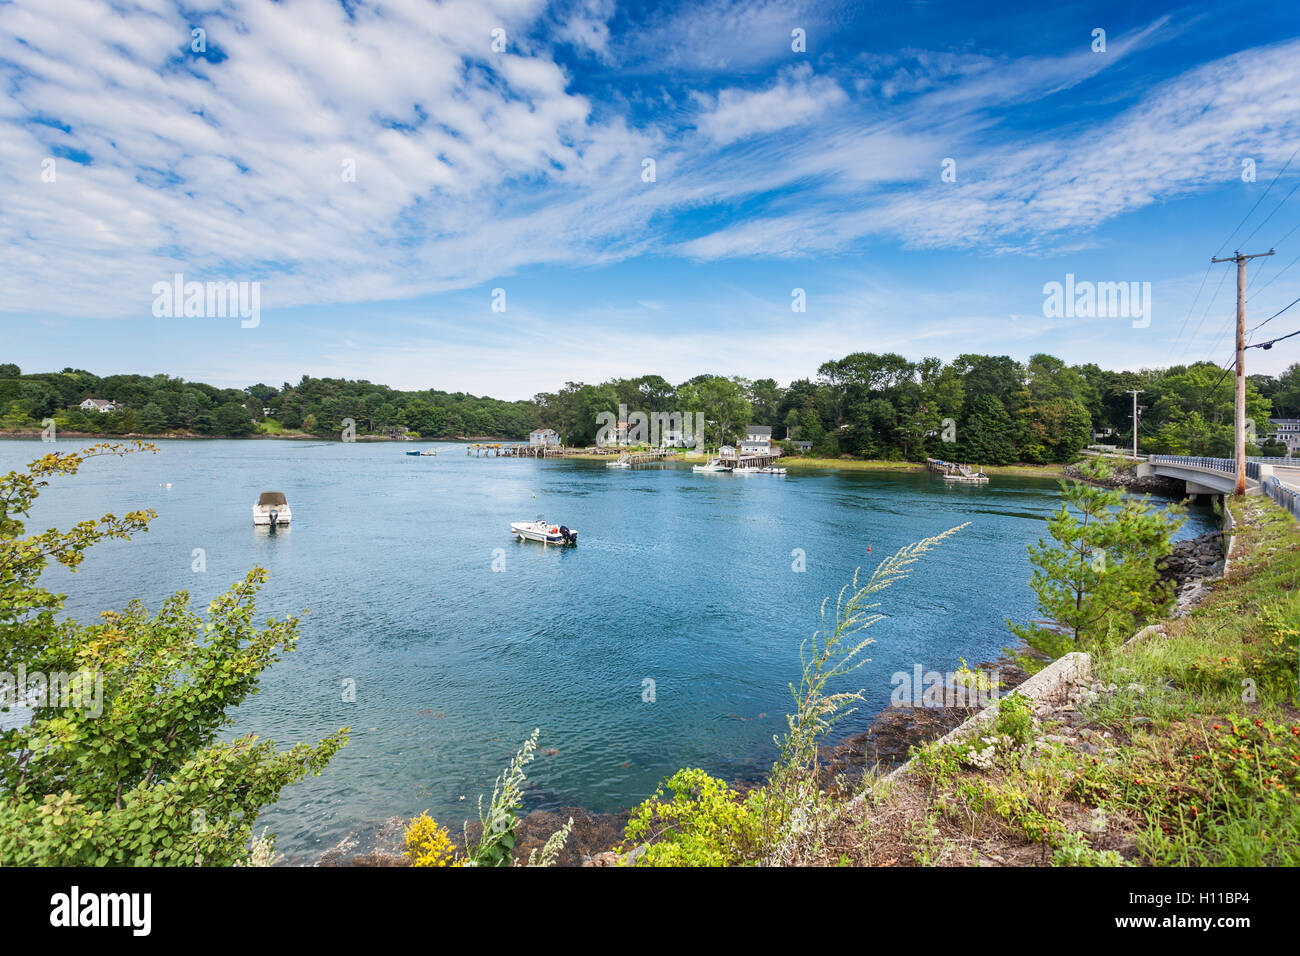 Spruce Creek, Maine - Stock Image